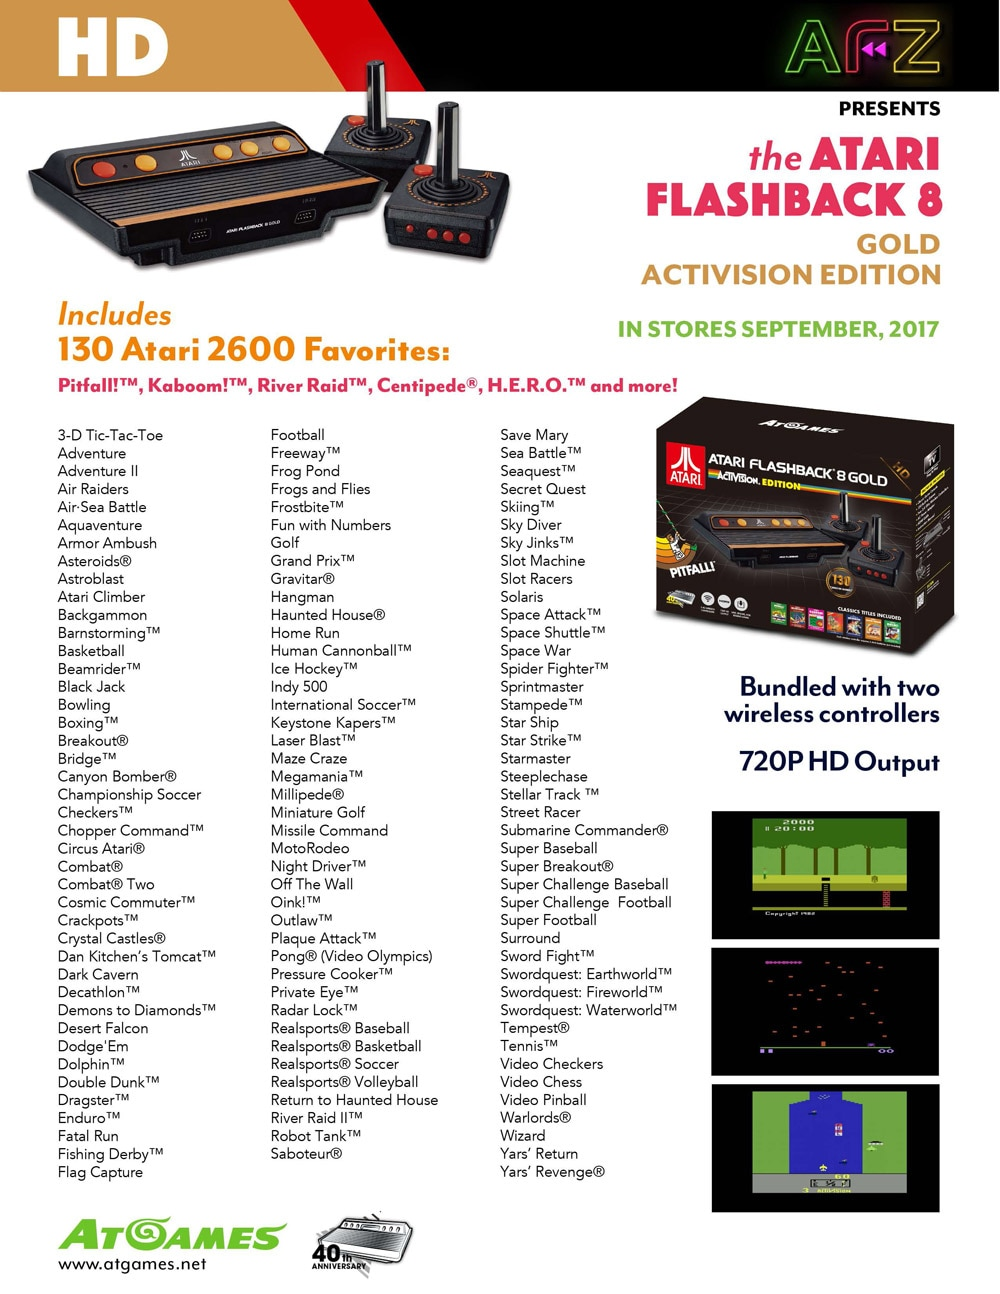 Geek boner alert atari and sega genesis return in new - Atari flashback classic game console game list ...